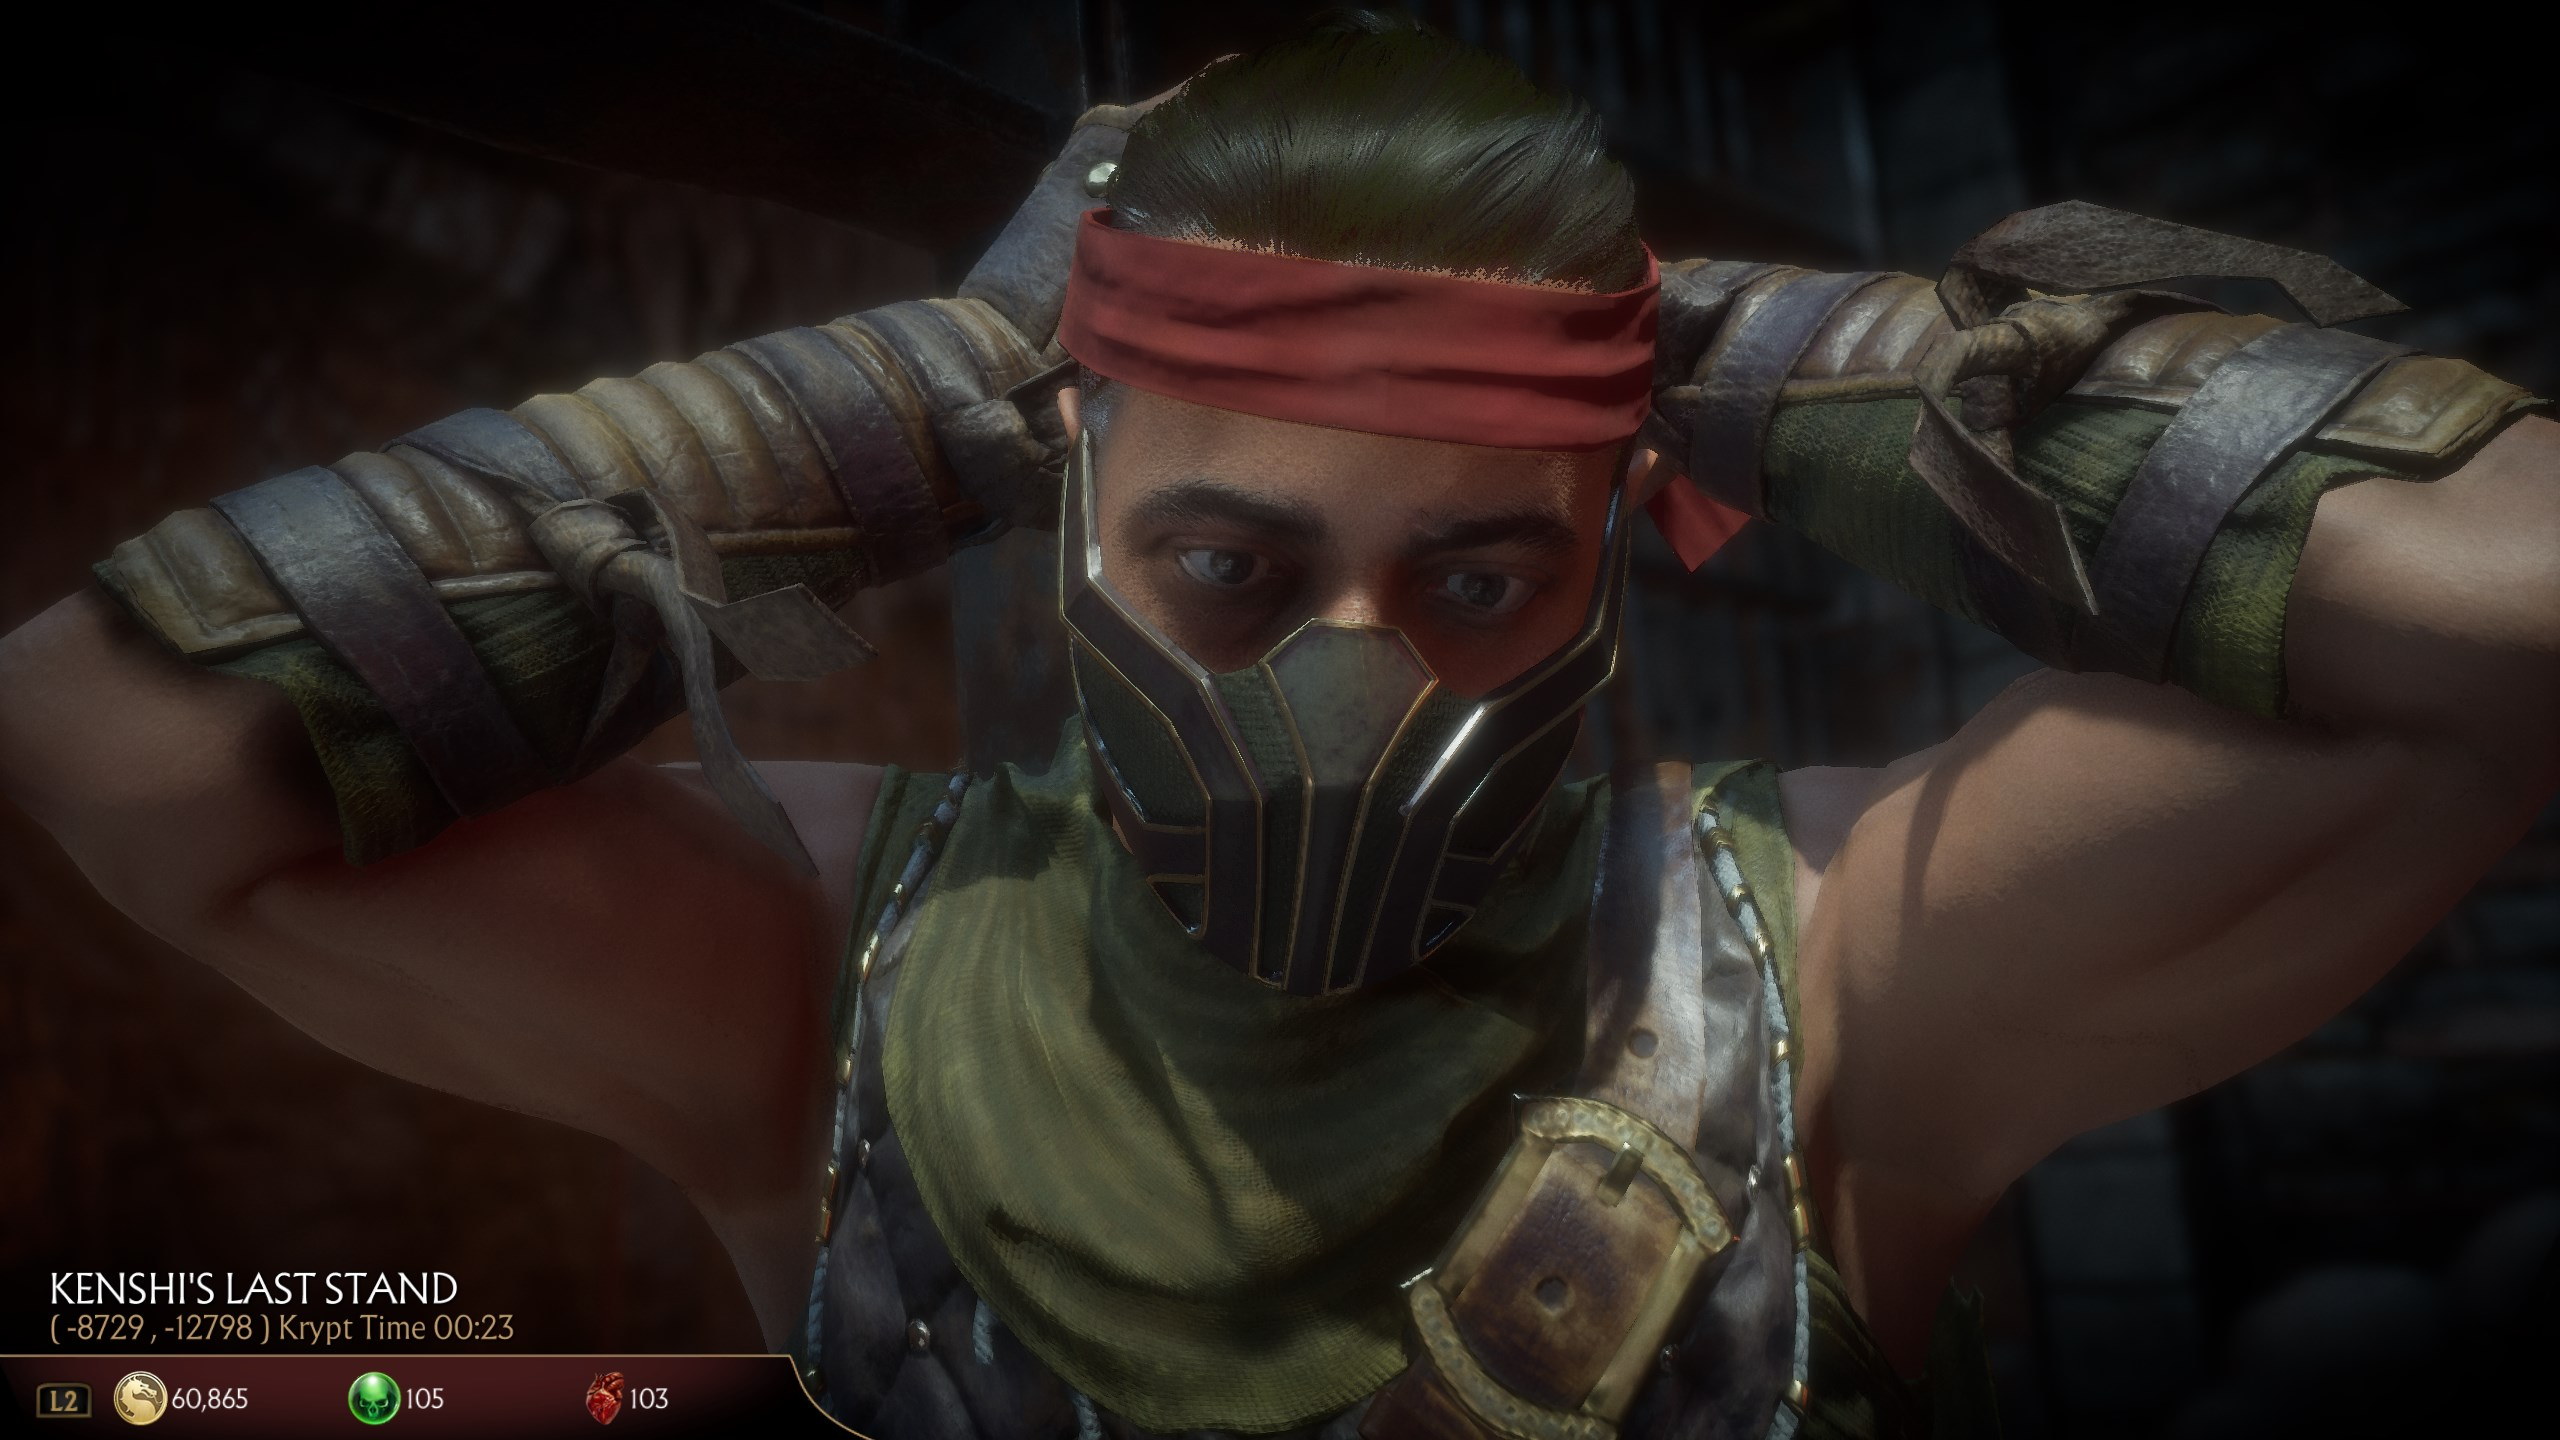 Mortal Kombat 11 Kenshi's Blindfold | See invisible walls